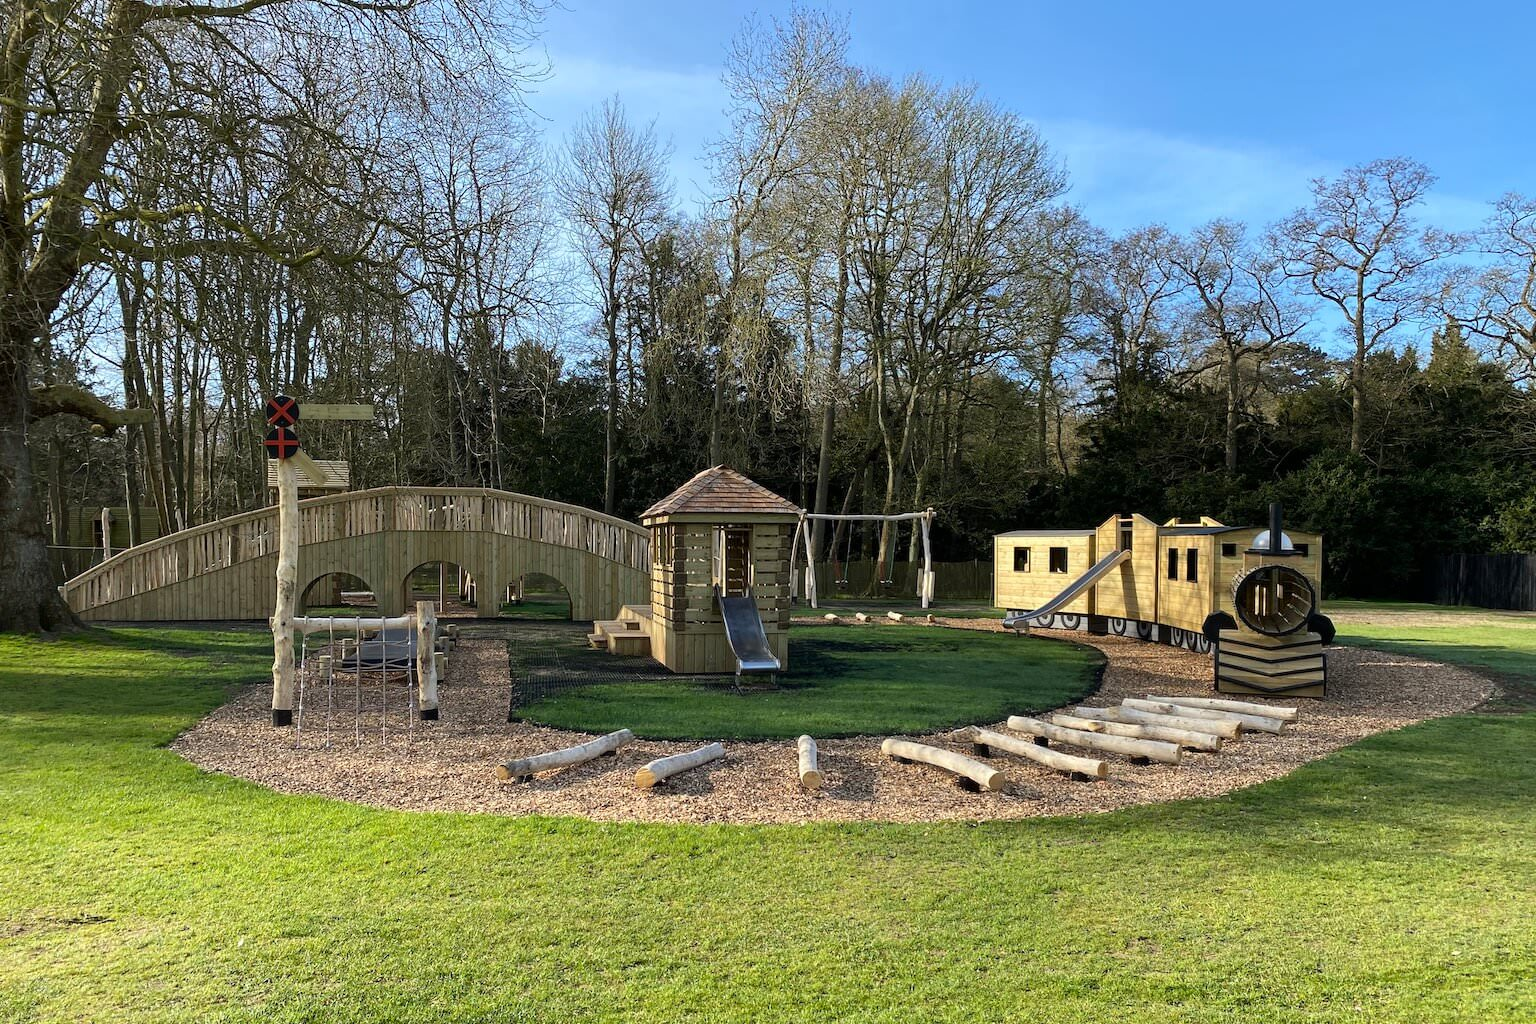 The new adventure play at Audley End Miniature Railway